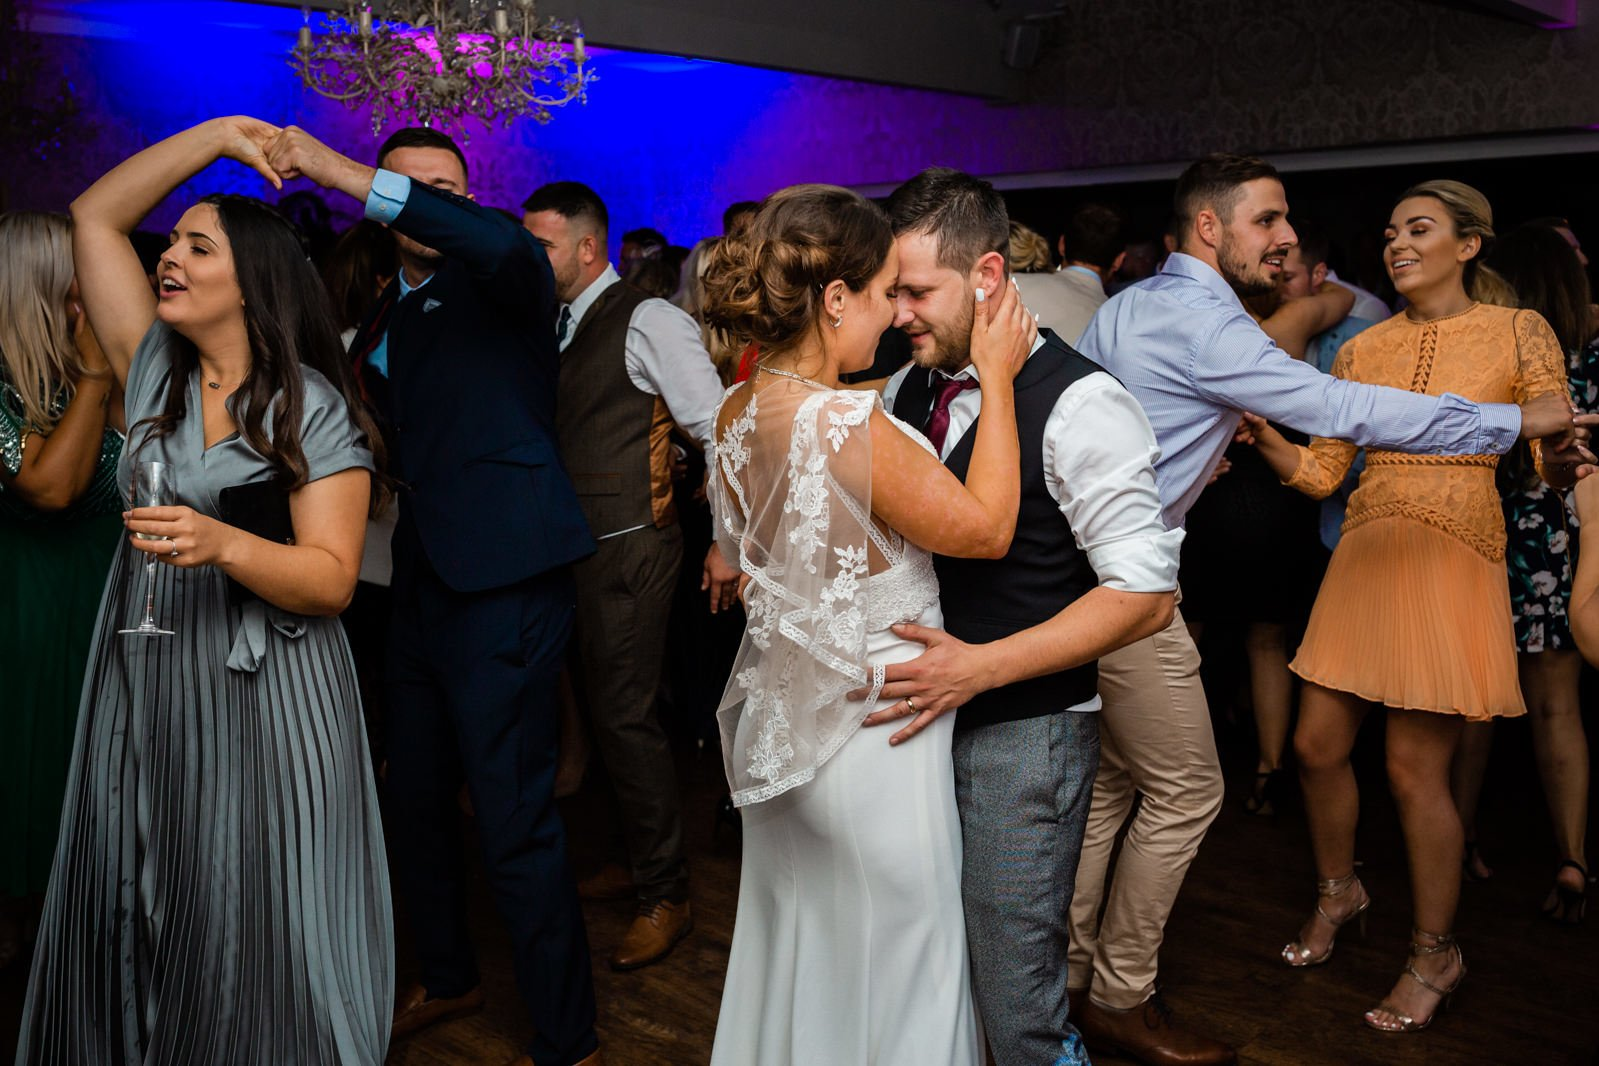 The Elephant Pangbourne Wedding - Stunning Kayleigh & Shane 99